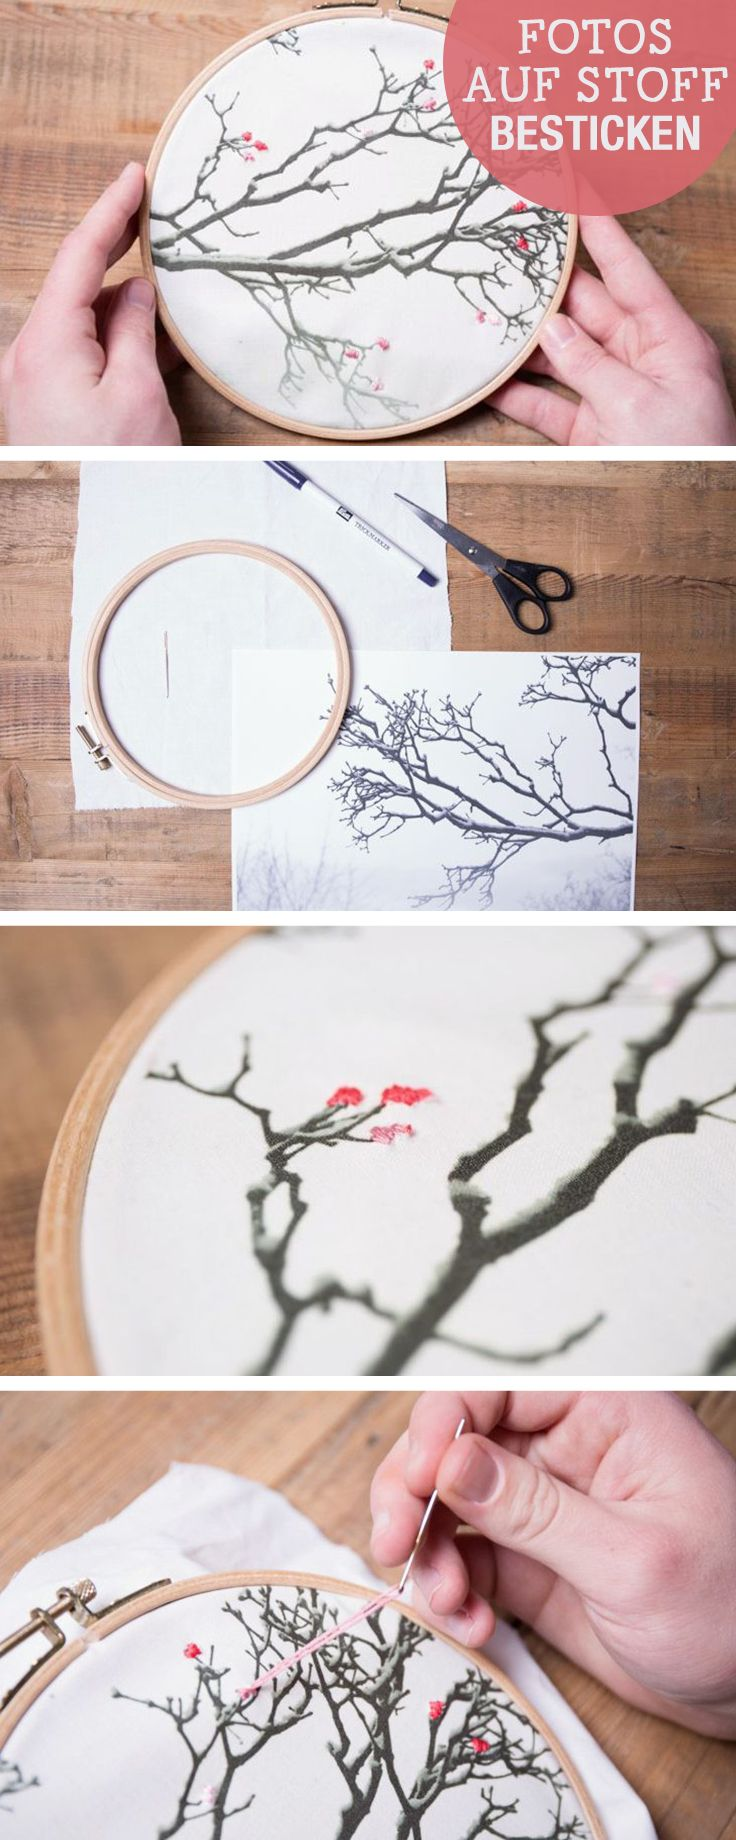 Stickanleitung: Fotos im Stickrahmen besticken, Stickideen / diy embroidery tutorials: use photos as stitching ground via DaWanda.com